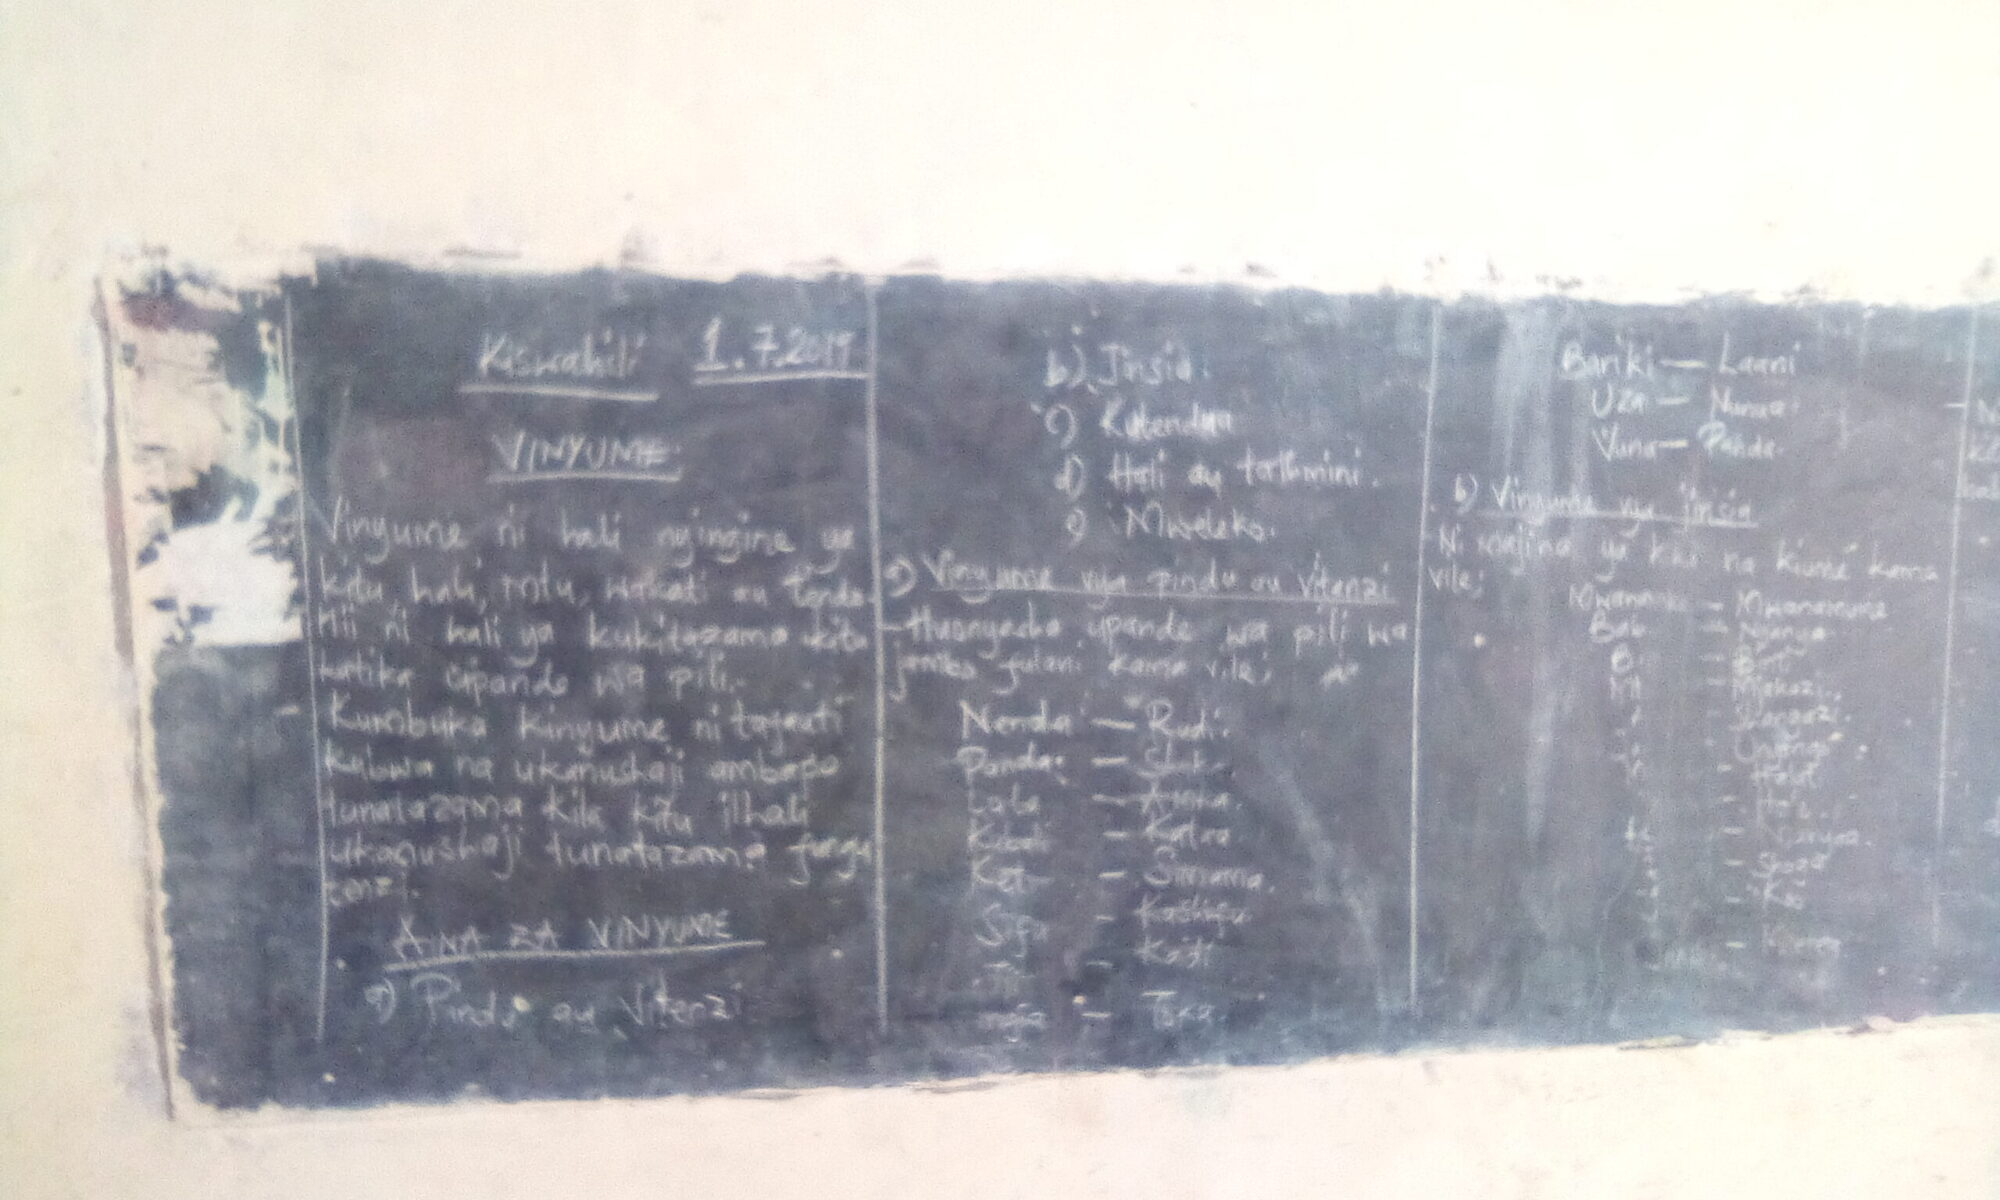 July 2019 Kiswahili lesson notes in a primary school in Migori County, Kenya